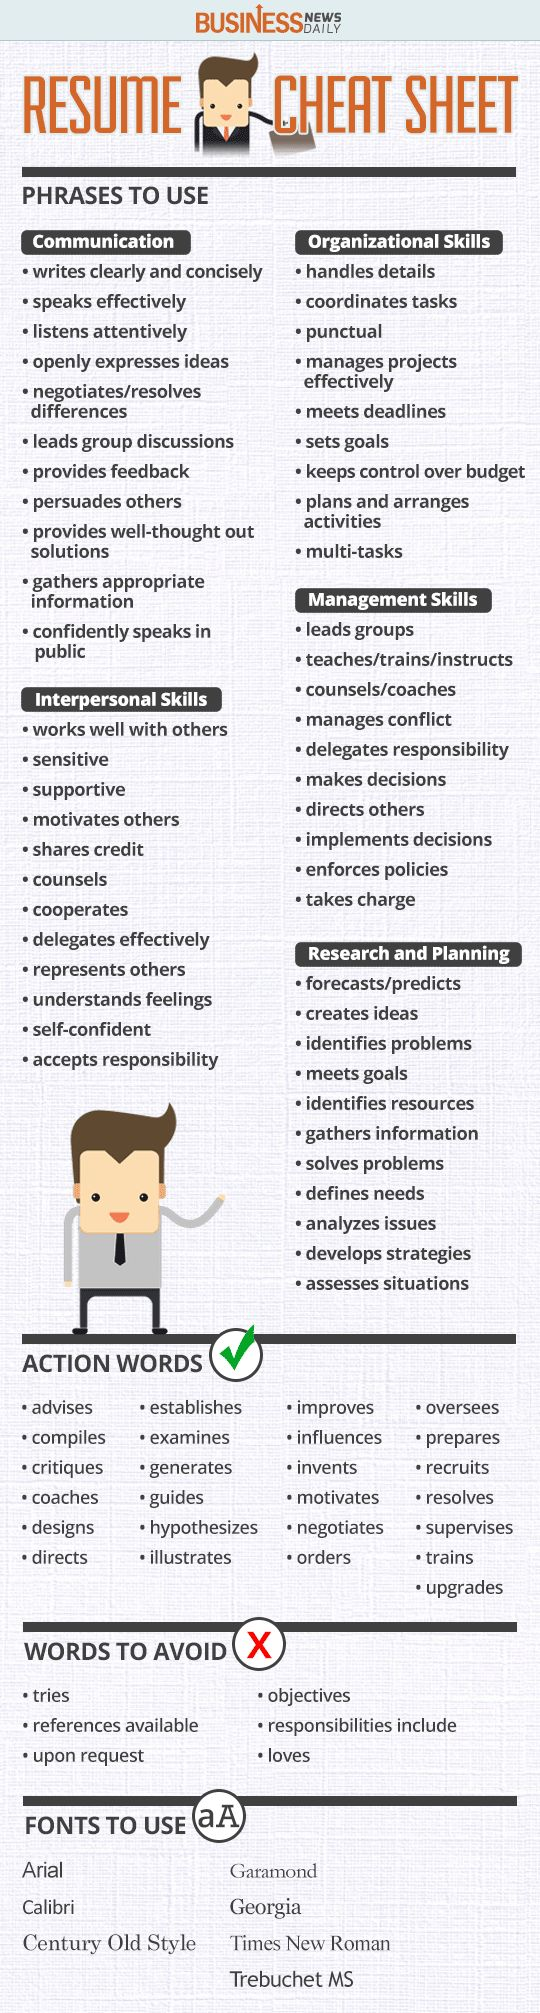 Opposenewapstandardsus  Inspiring  Ideas About Resume On Pinterest  Cv Format Resume Cv And  With Exquisite Resume Cheat Sheet Infographic Andrews Almost Done With A Complete Unit On Employment Which With Agreeable Resume Creative Also Chrome Resume Download In Addition Make My Resume Online And Samples Of A Resume As Well As How To Make Resume For Job Additionally Student Resume Samples From Pinterestcom With Opposenewapstandardsus  Exquisite  Ideas About Resume On Pinterest  Cv Format Resume Cv And  With Agreeable Resume Cheat Sheet Infographic Andrews Almost Done With A Complete Unit On Employment Which And Inspiring Resume Creative Also Chrome Resume Download In Addition Make My Resume Online From Pinterestcom